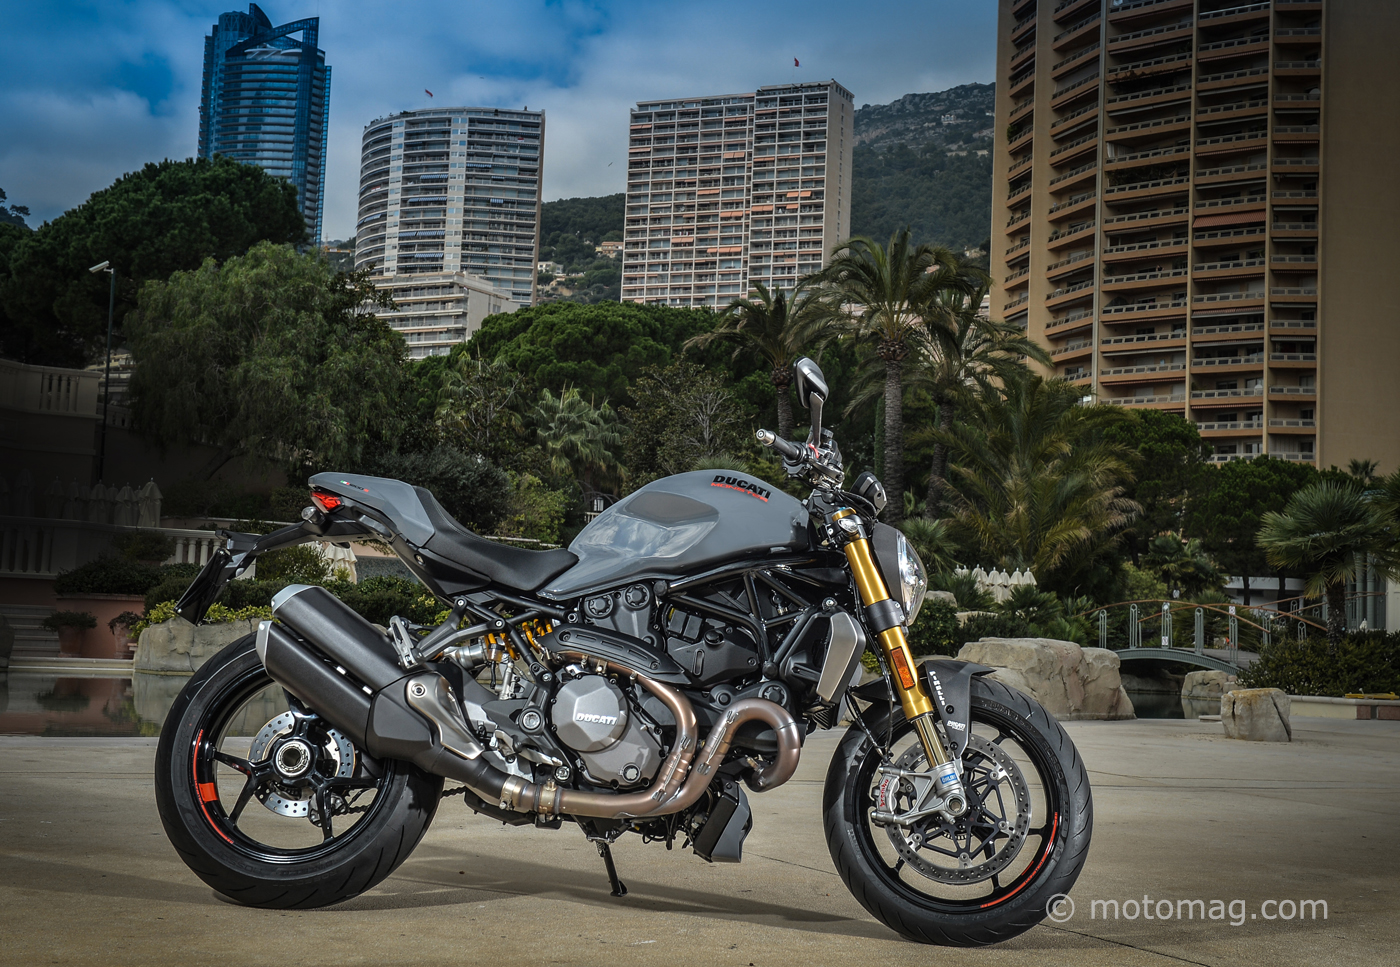 Ducati Monster 1200 S : la belle